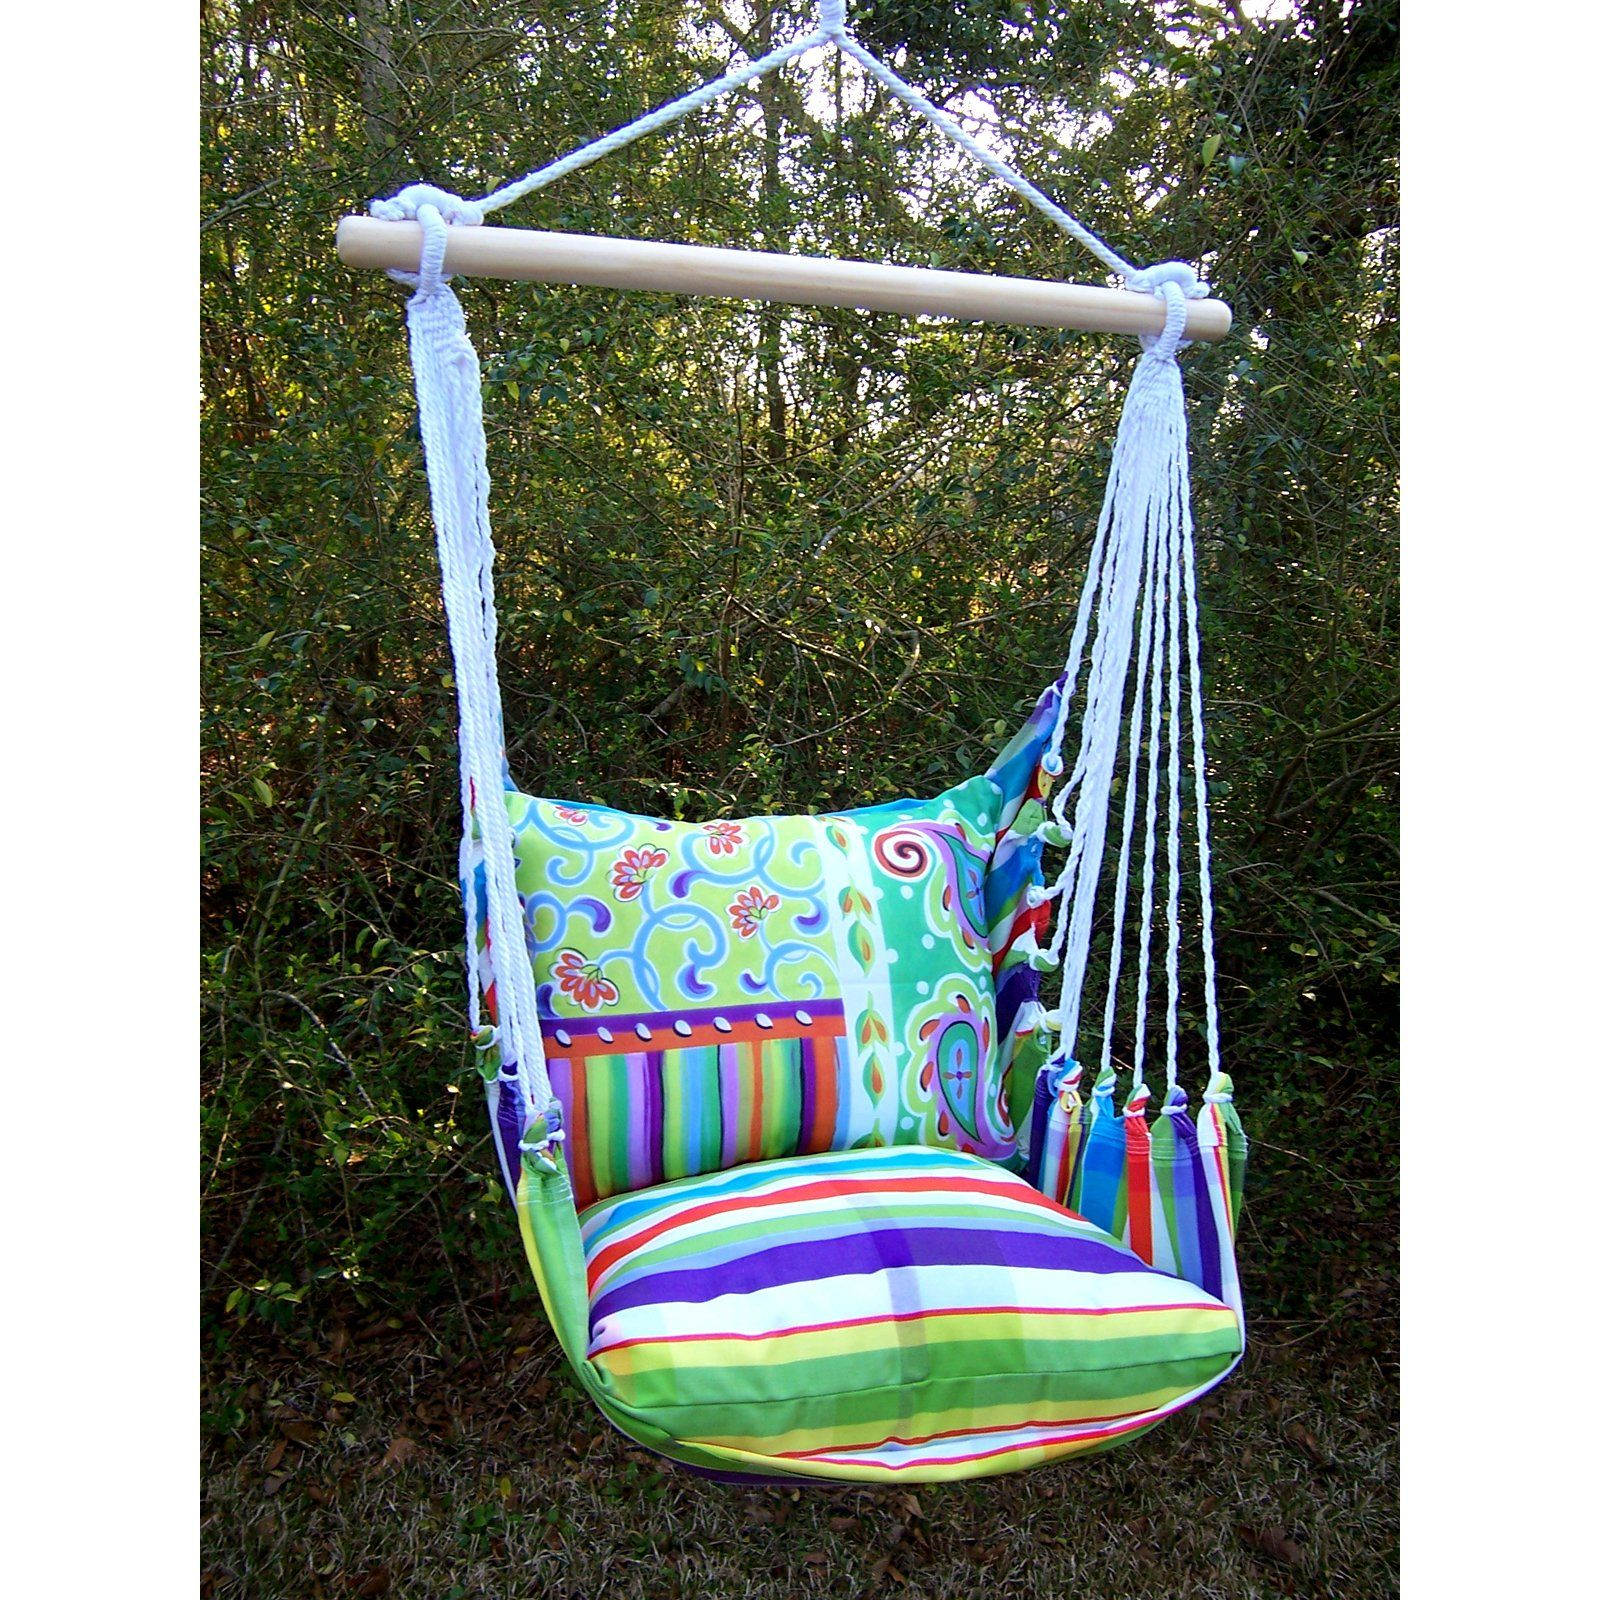 Lovely Magnolia Casual Fine U0026 Dandy Hammock Chair With Pillow Set   Hammock Chairs  U0026 Swings At Hammocks